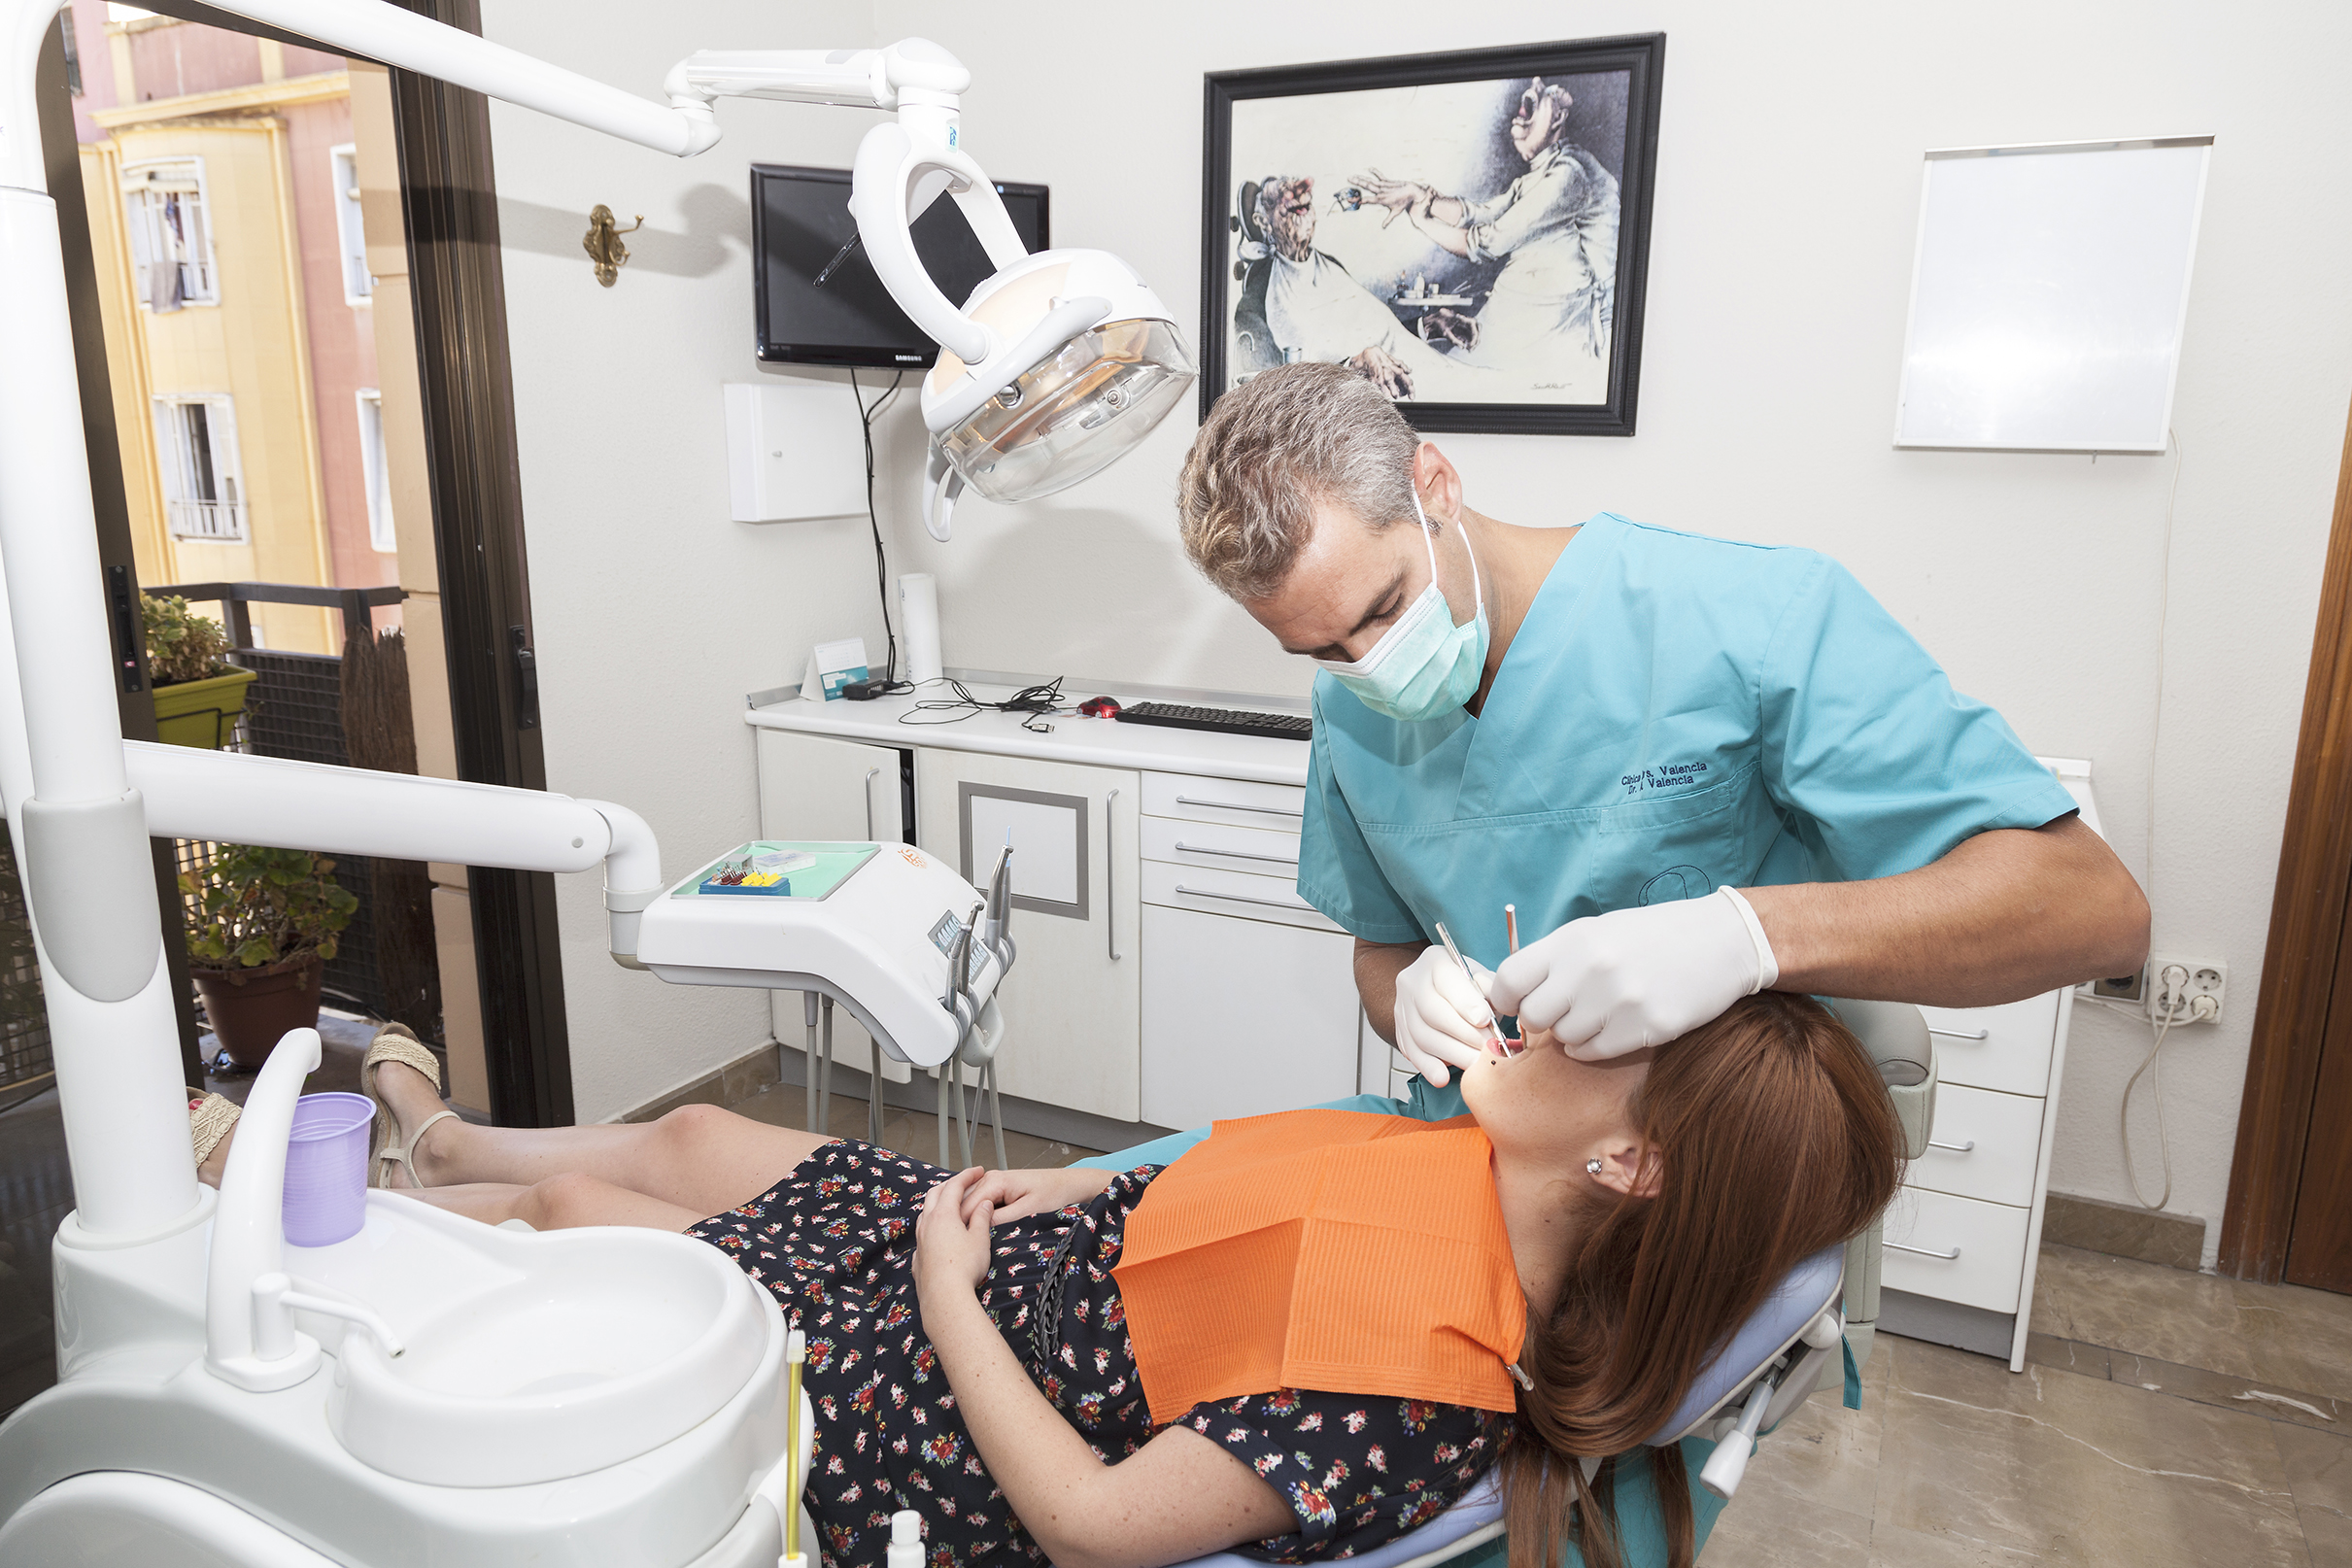 Clinica dental en granada clinica dental dres valencia - Clinicas dentales granada ...